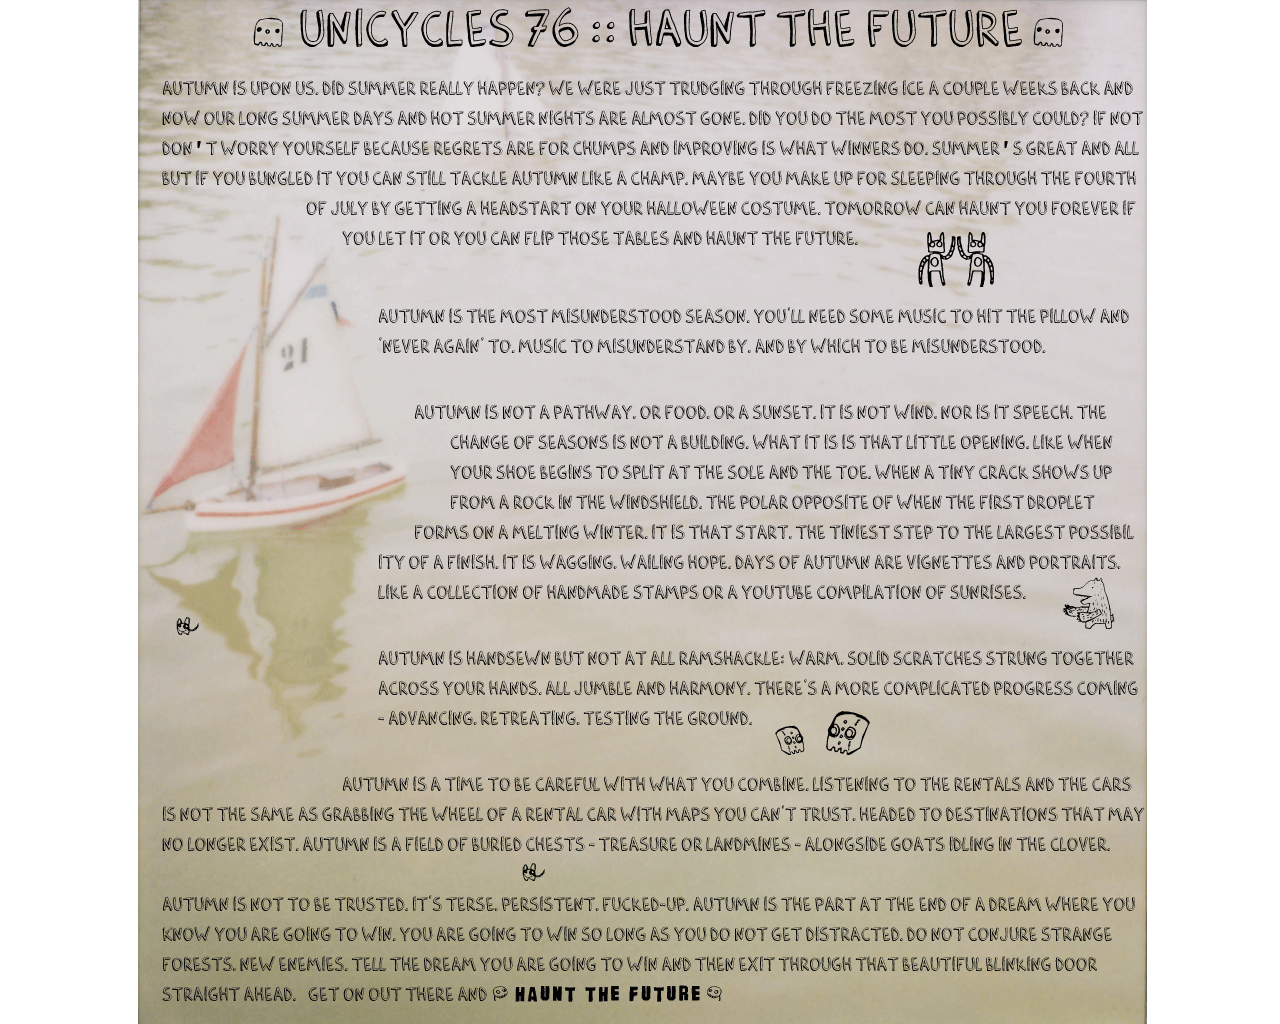 Unicycles 76 :: Haunt the future